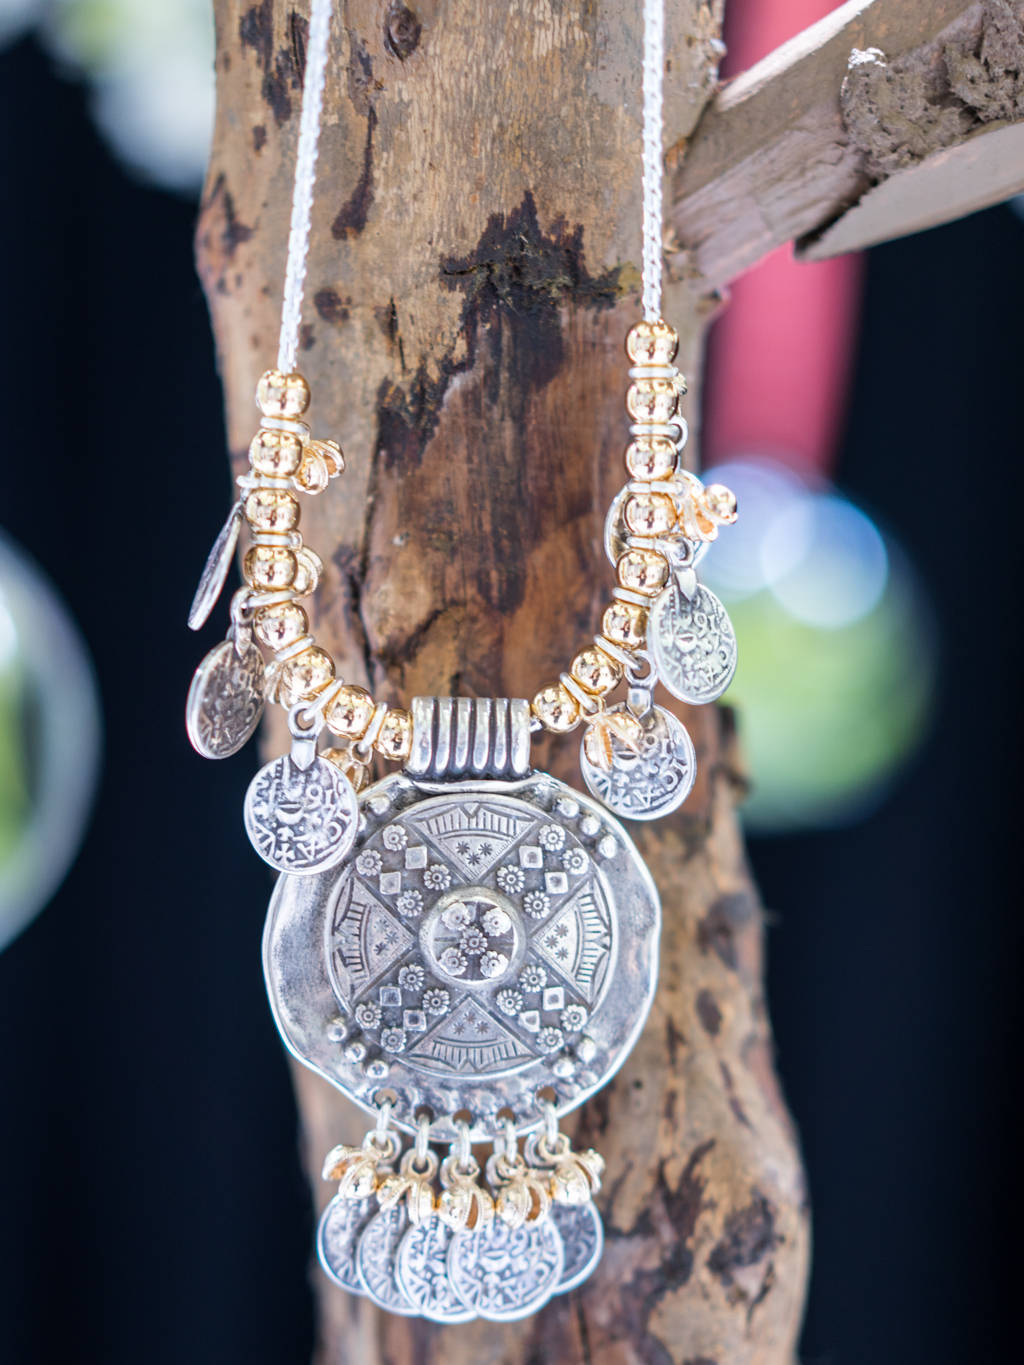 Mixed metals statement necklace for festival vibes